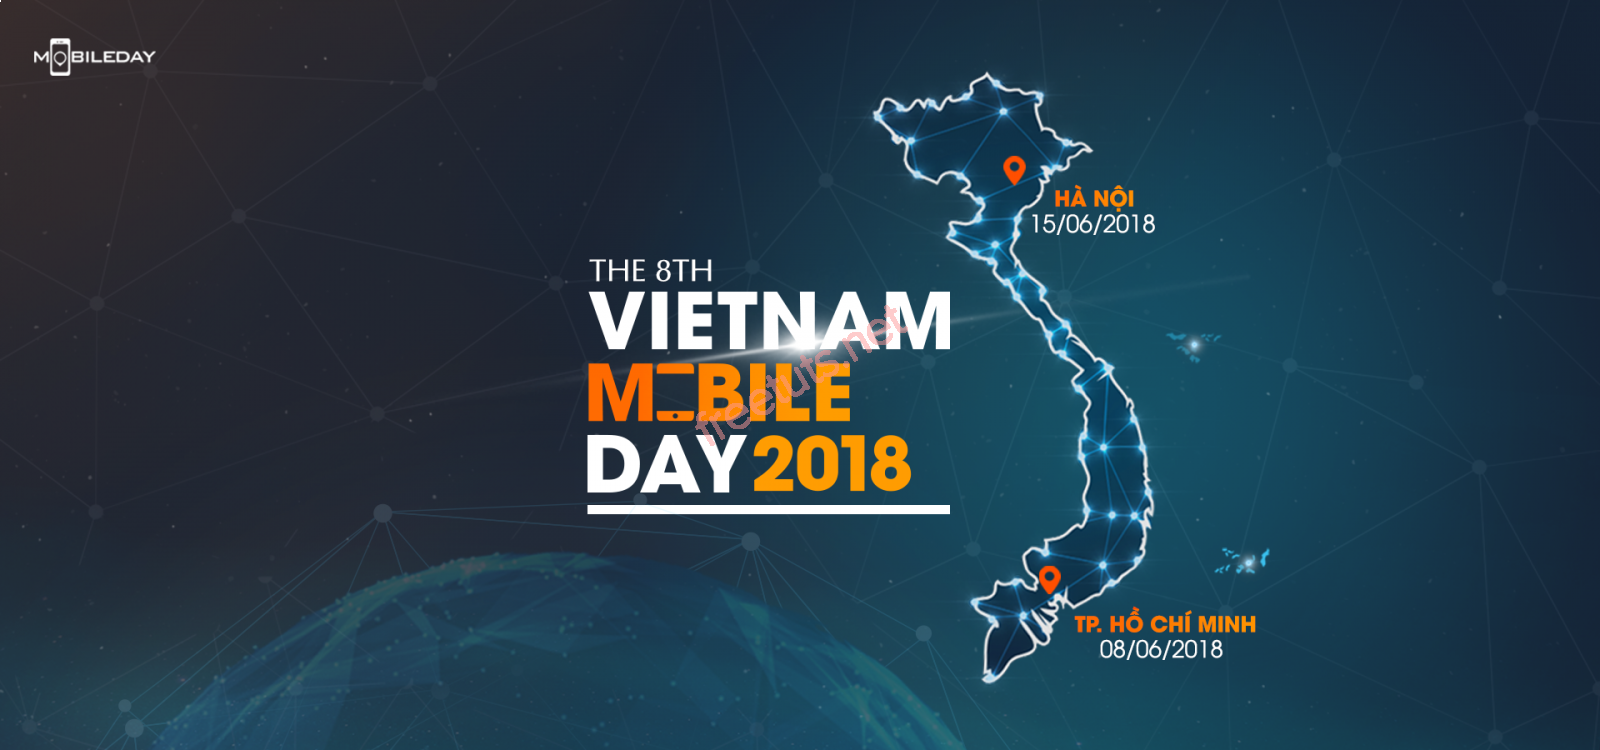 vietnam mobile day 2018 png